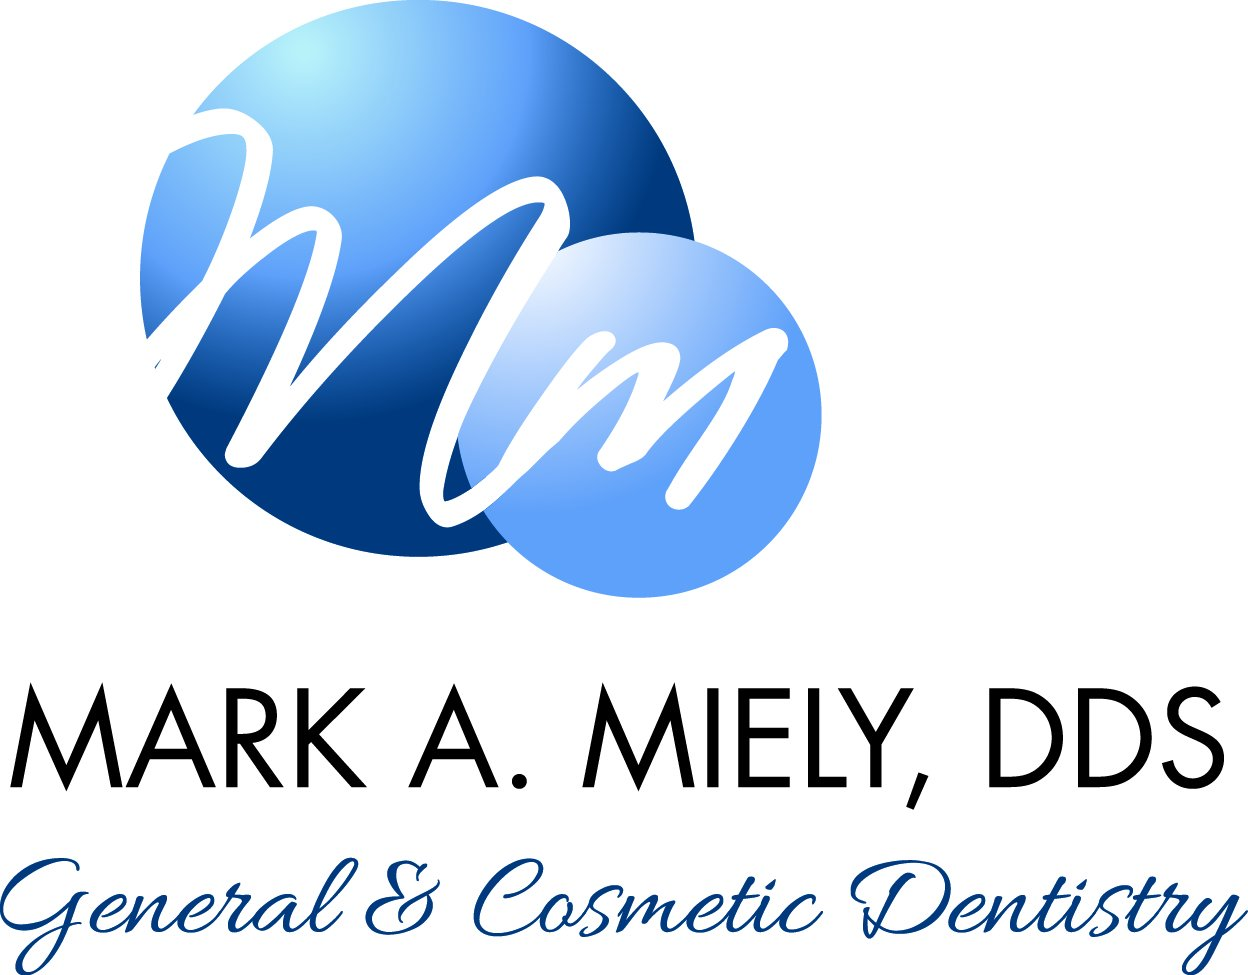 Mark A. Miely, DDS